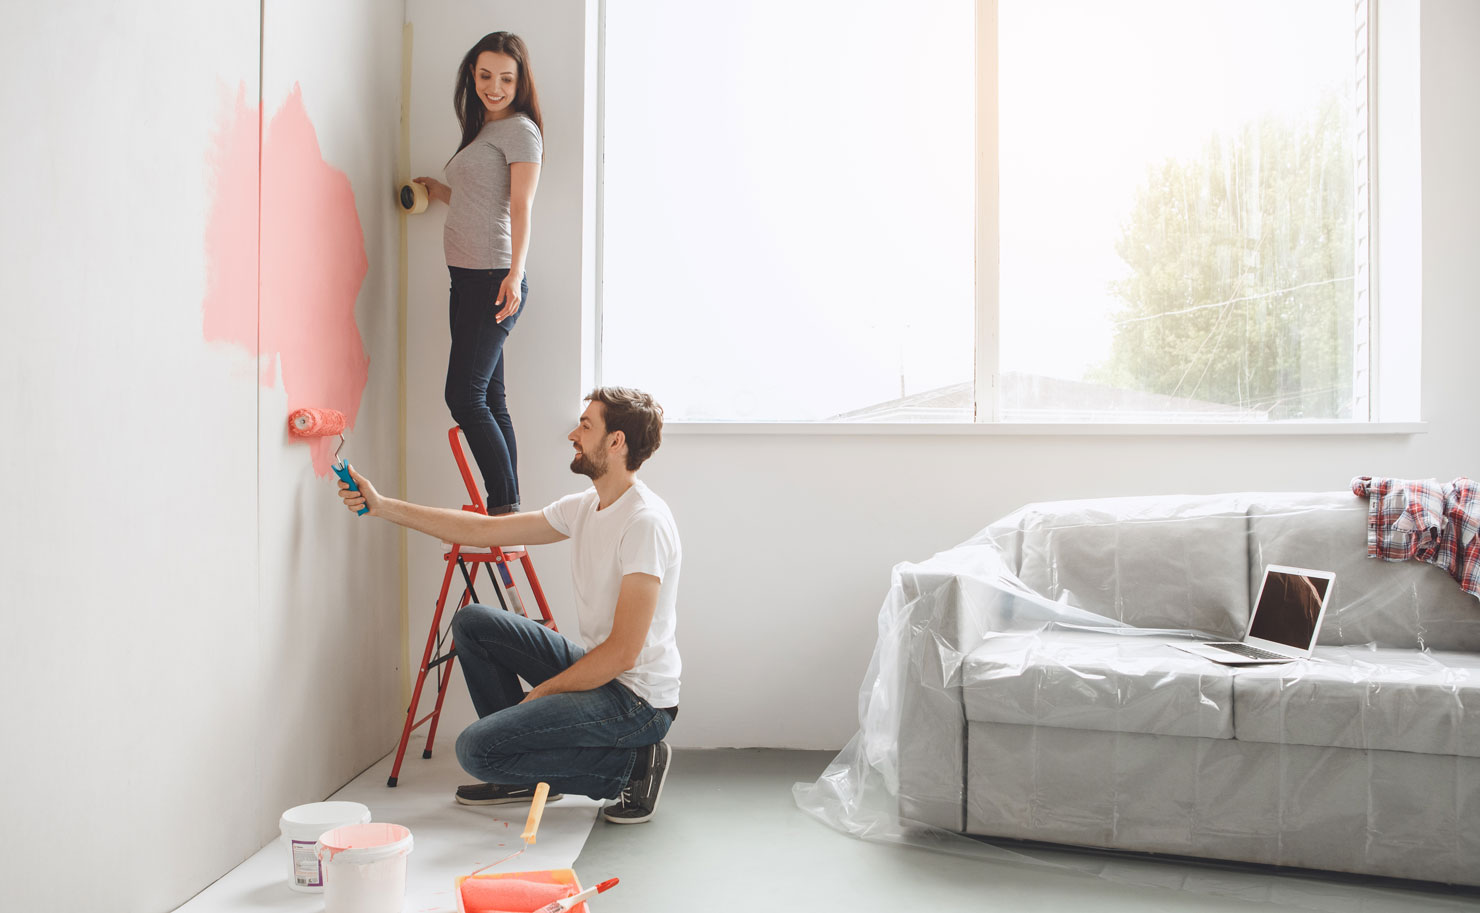 Man and woman preparing to decorate room